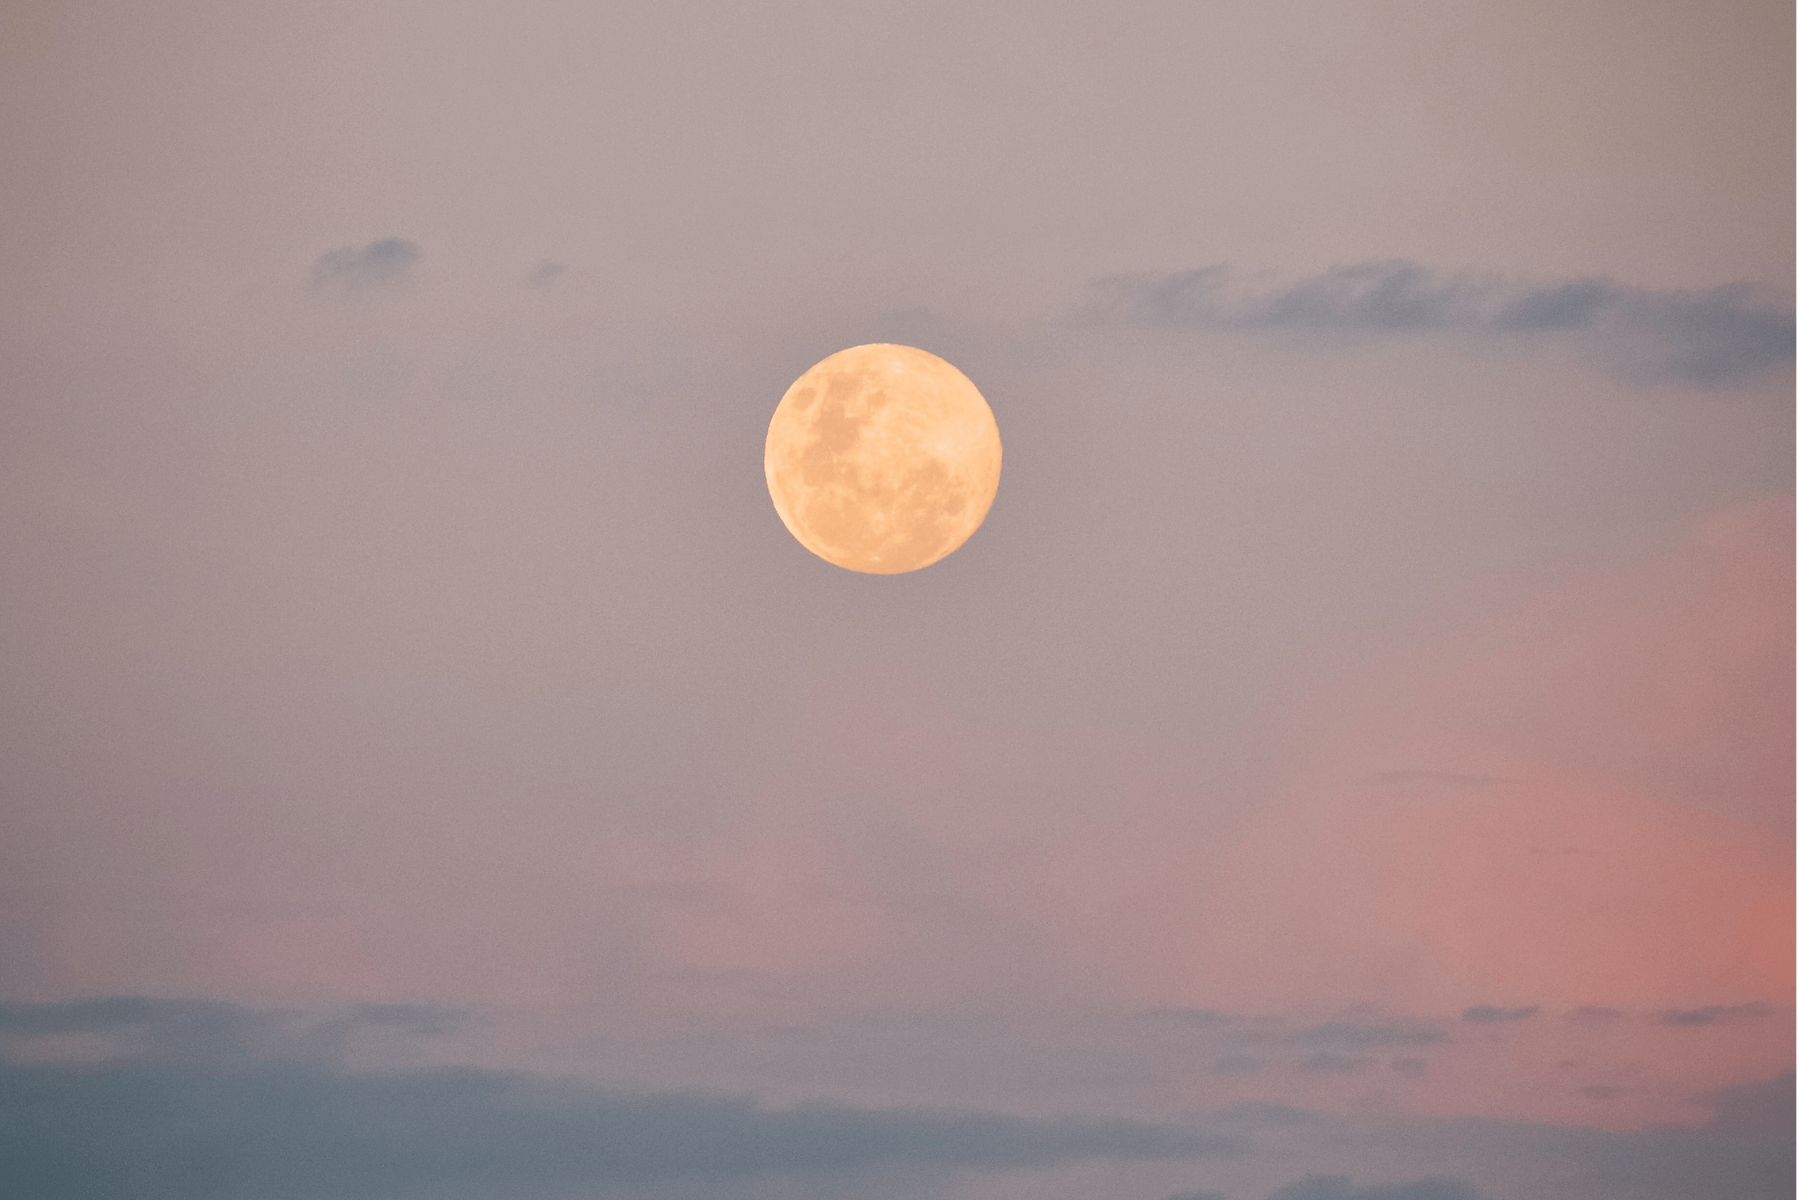 New Moon and Full Moon - What's the Difference?